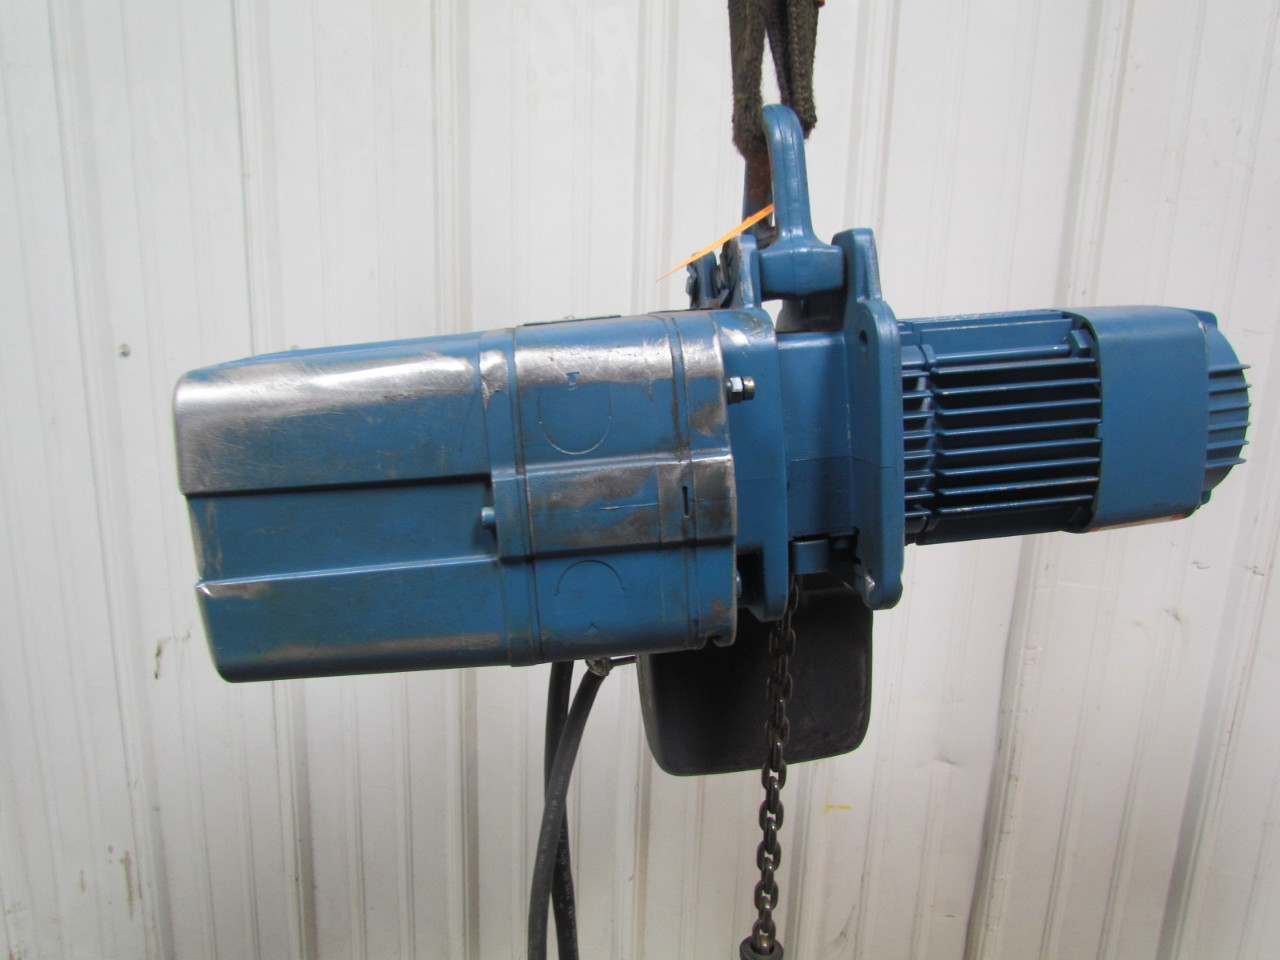 Demag dkun 5 500 k v1 1 2 ton 1000 lb electric chain hoist for 1 4 ton chain motor